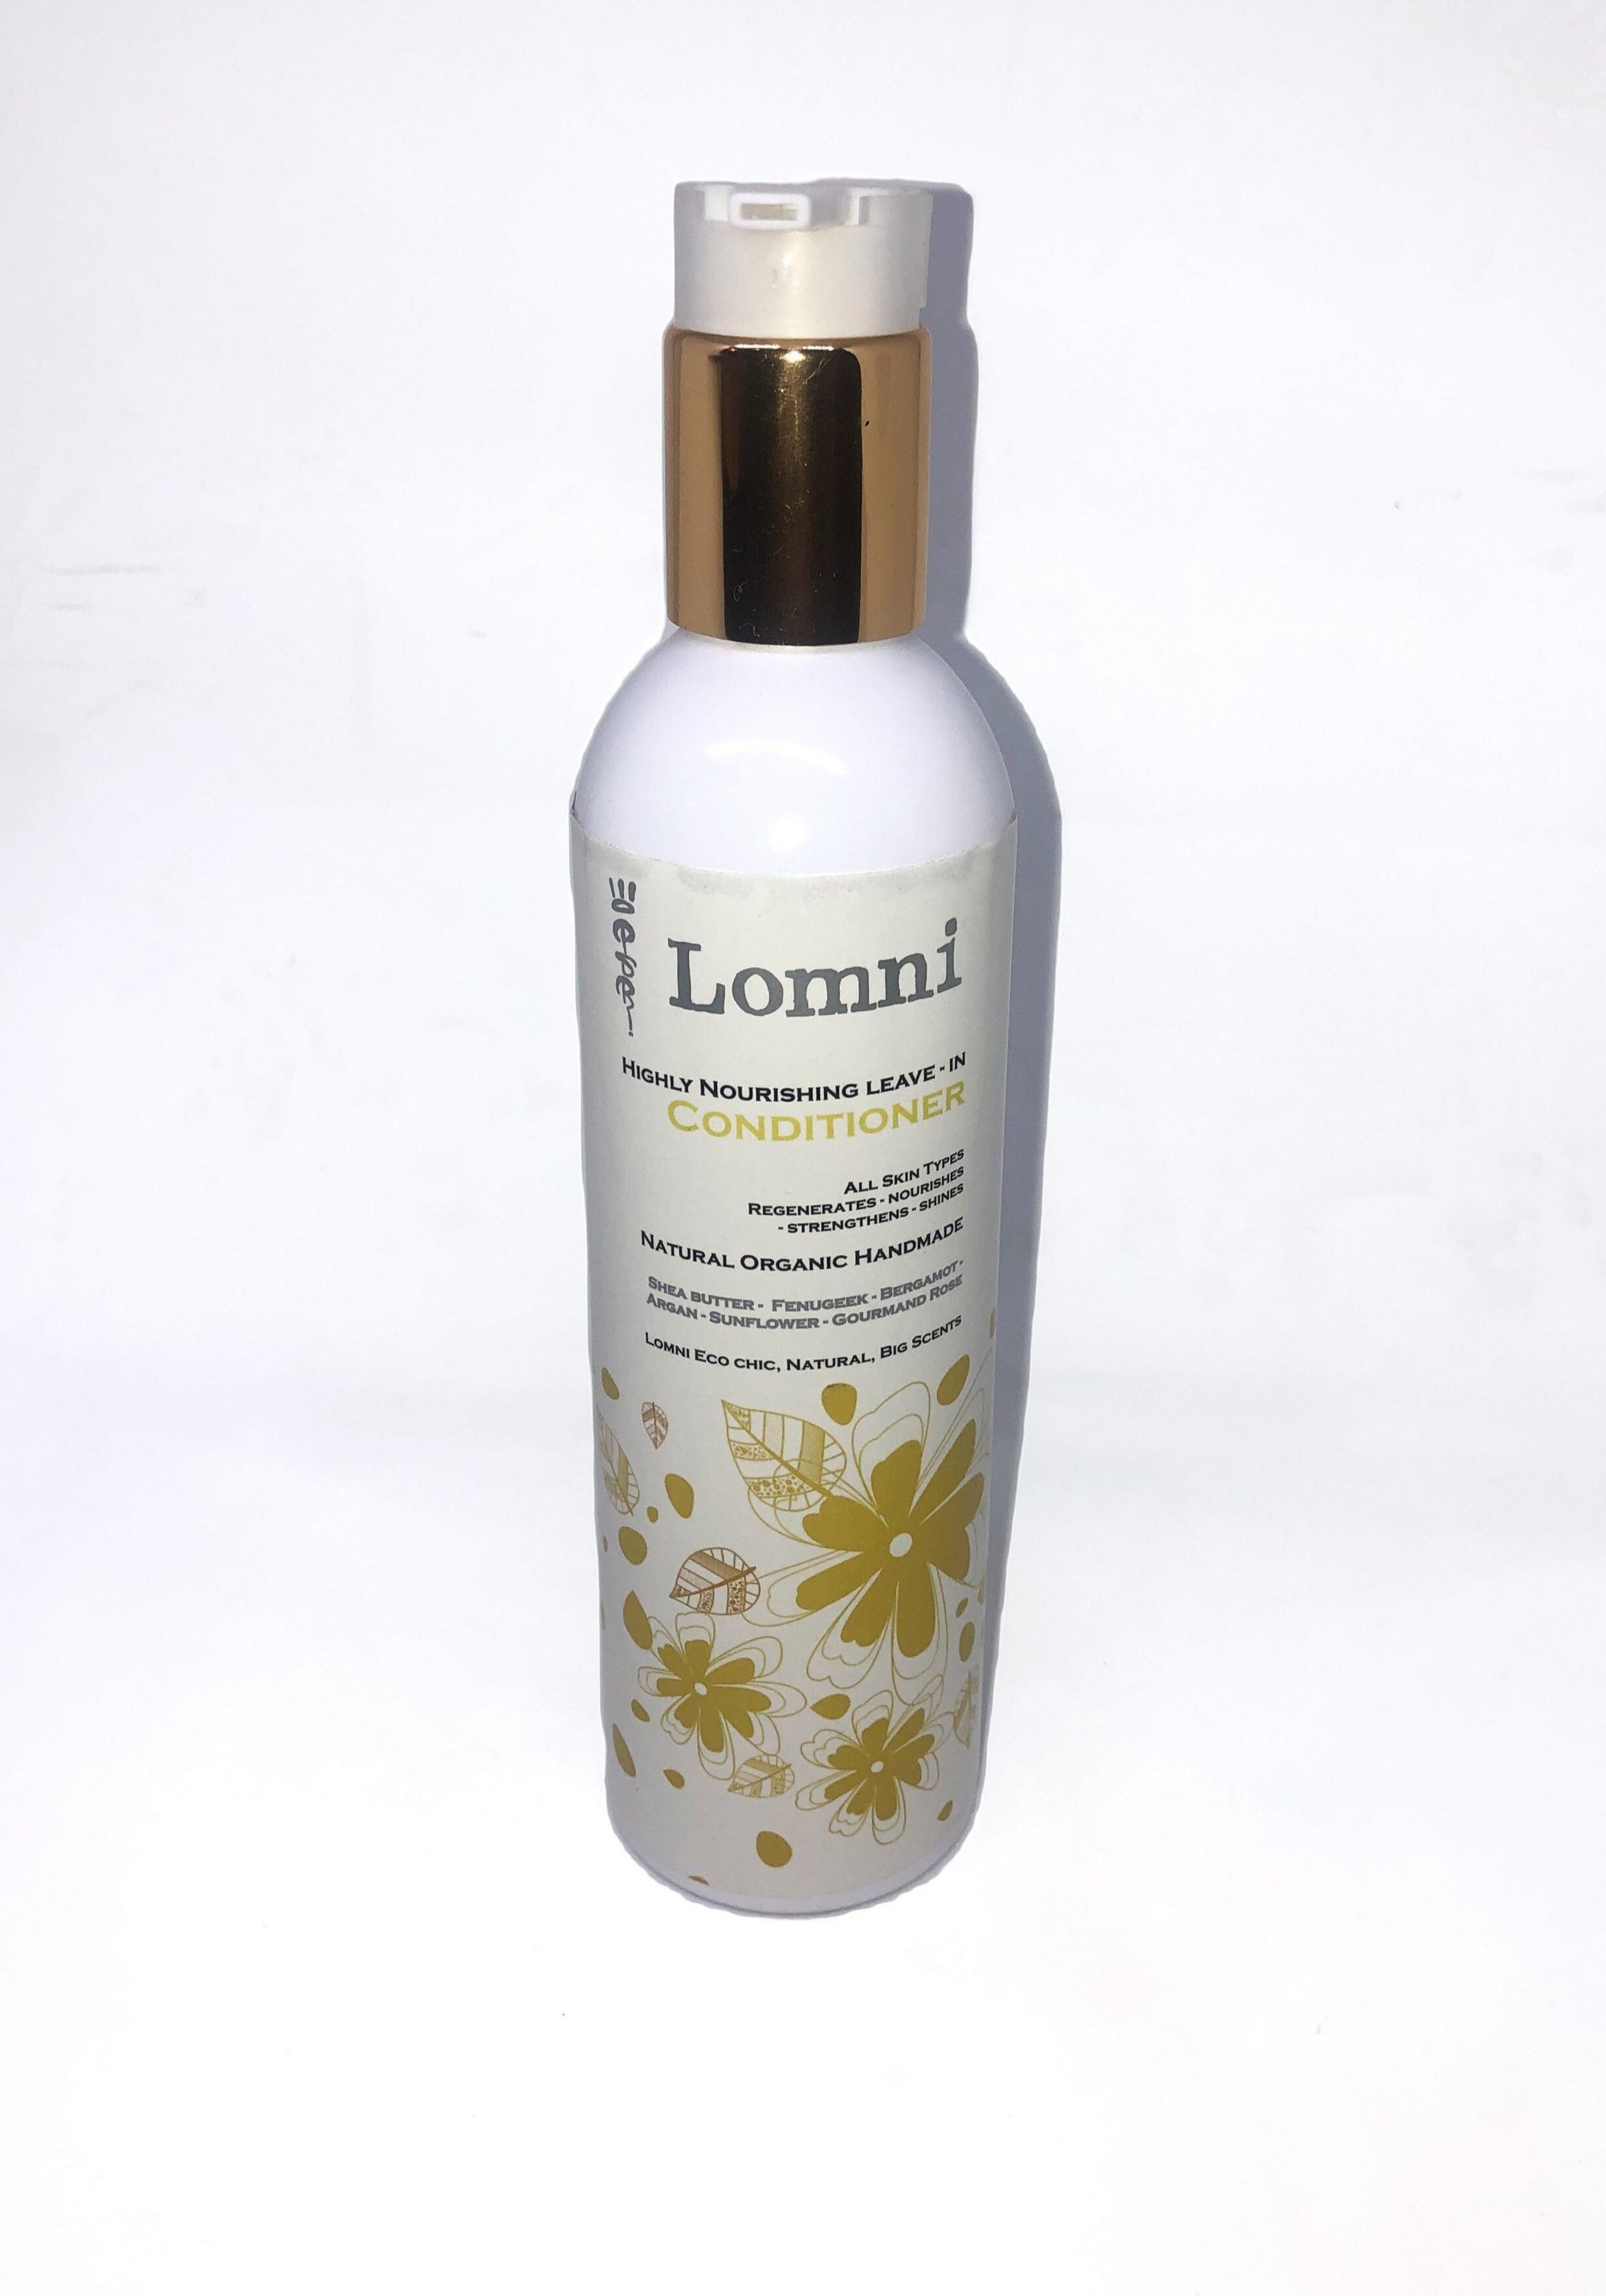 Lomni Highly Nourishing Conditioner